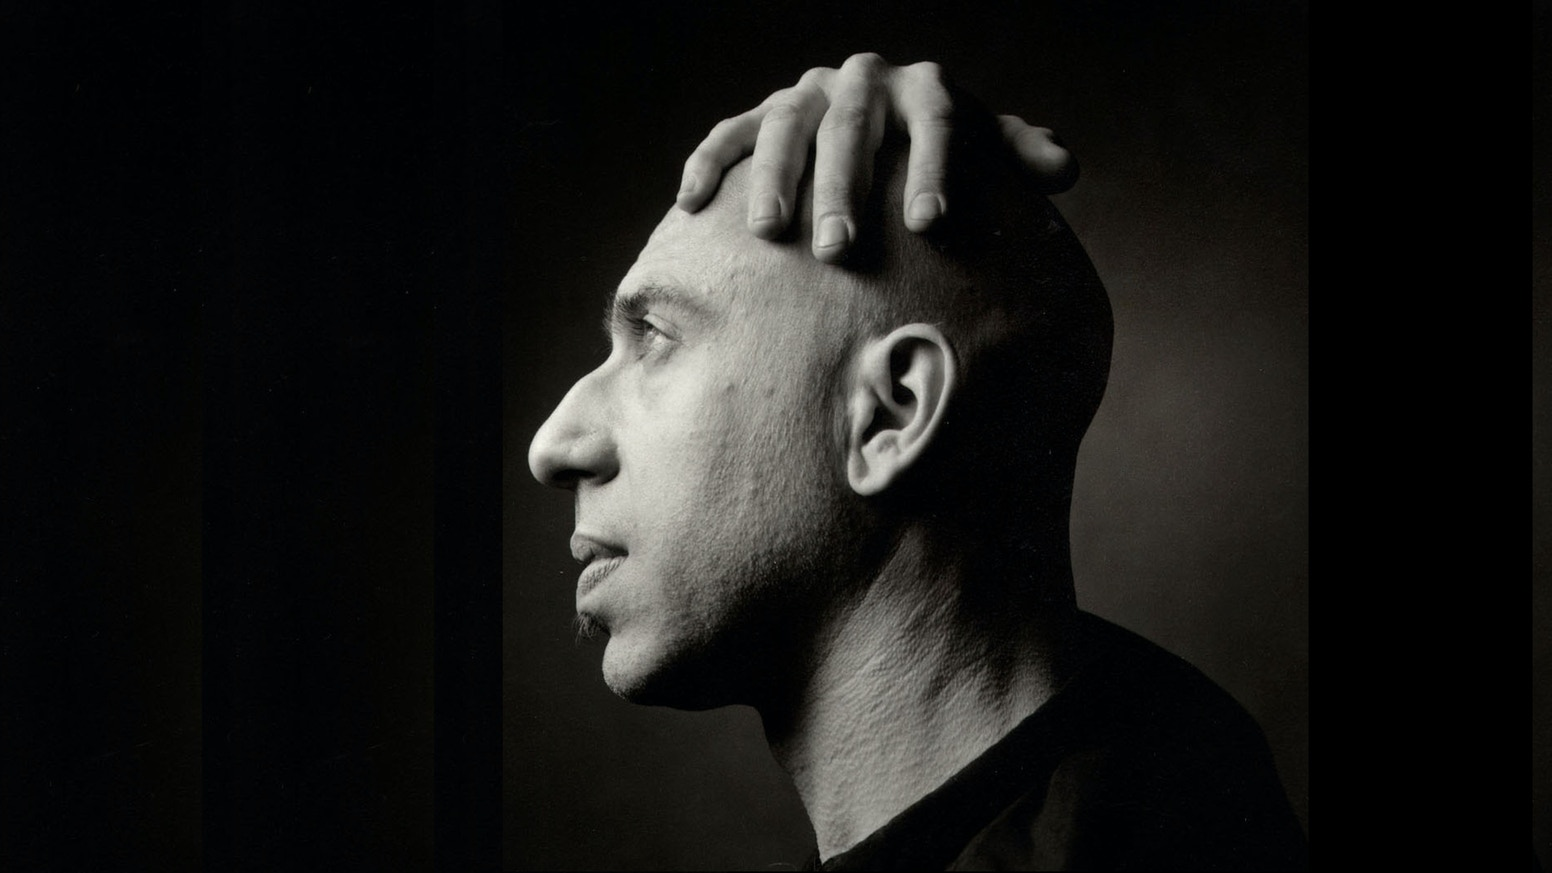 A new book by American composer, guitarist, and theorist Elliott Sharp